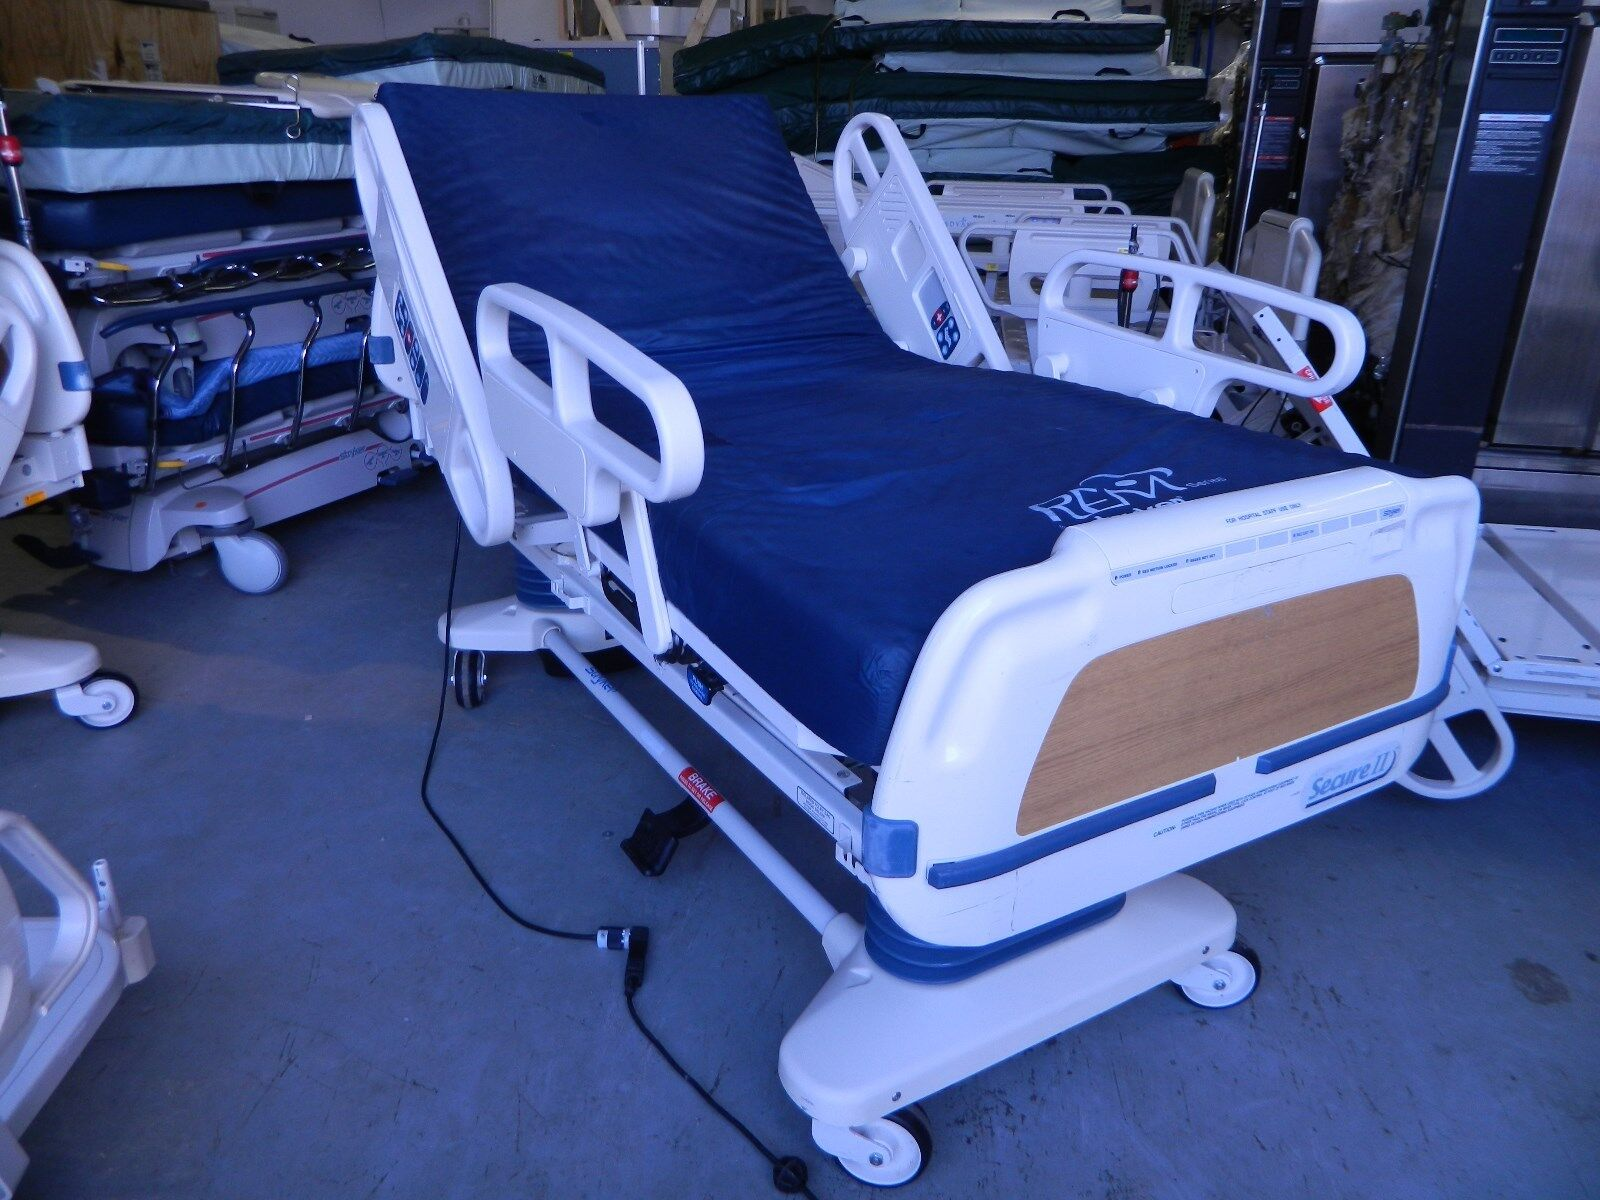 compartimental models to predict hospital bed Been used to predict future bed need historic and current hospital bed use is not routinely measured  inpatient bed need planning--back to the future p 5.